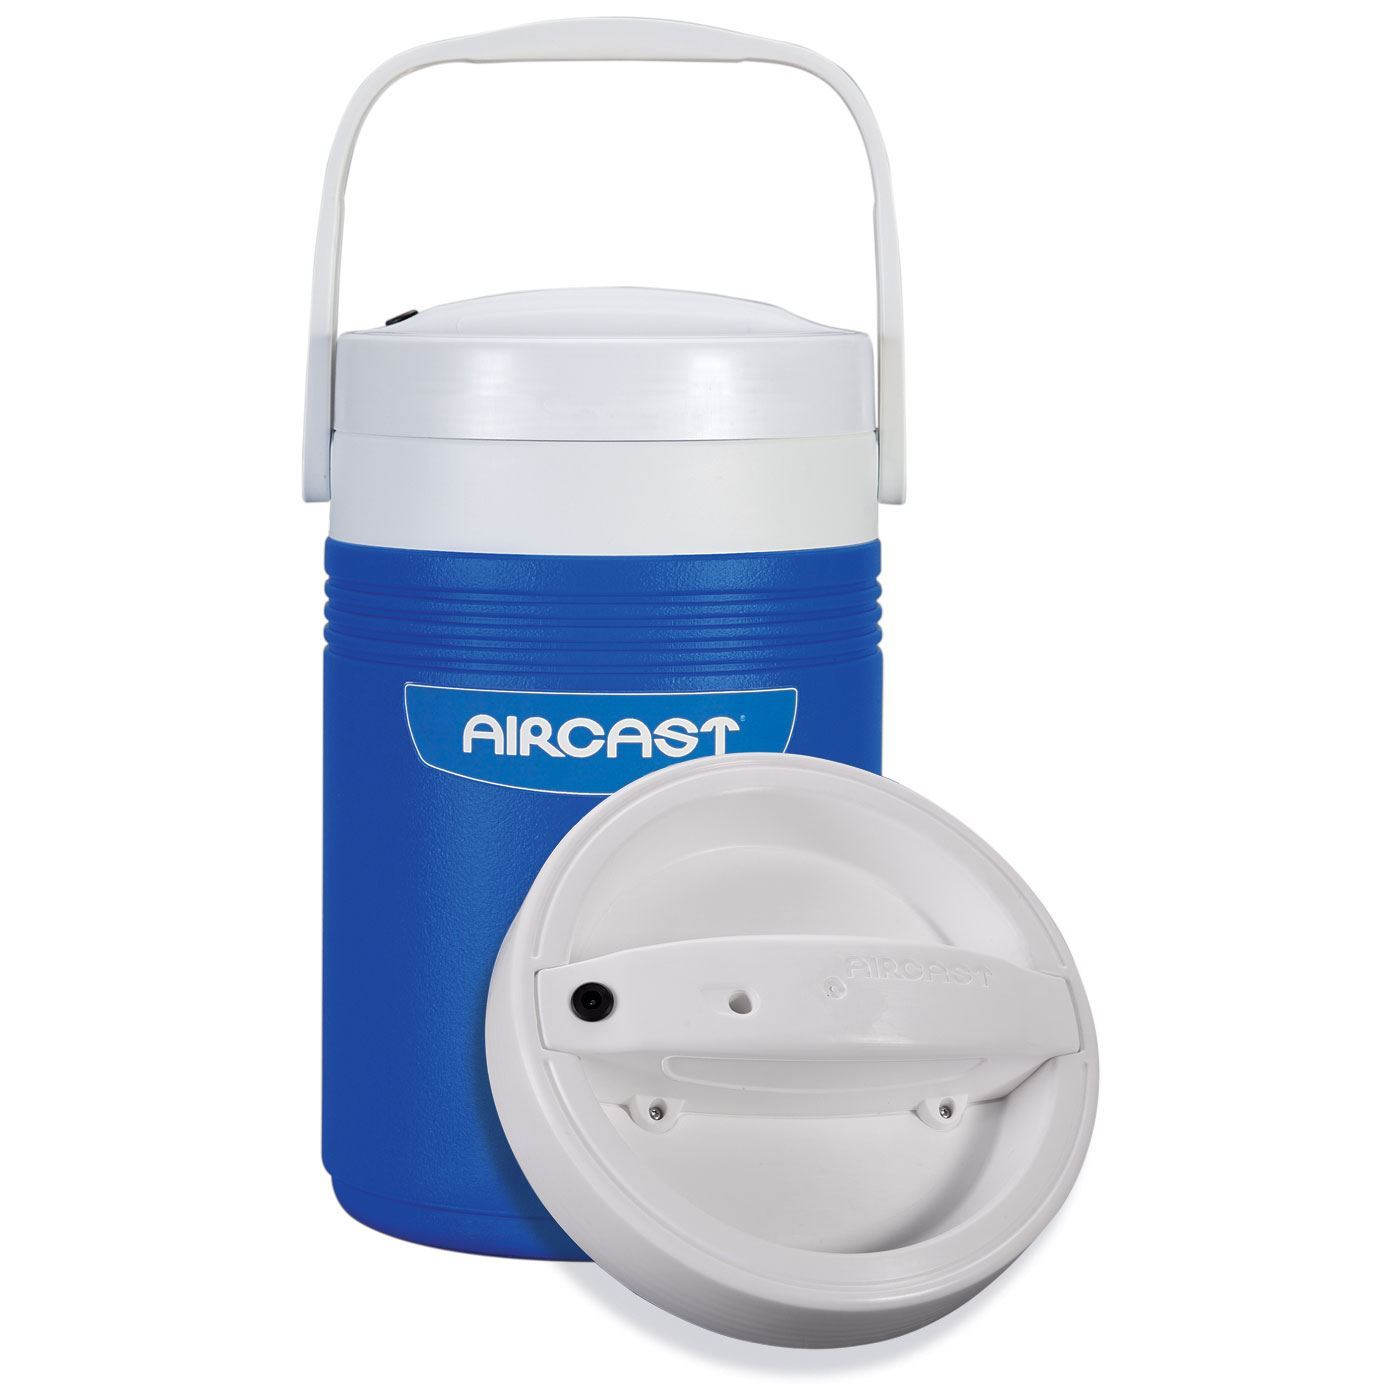 Aircast cryo cuff ic cooler opc health for Cryo cuff ic motorized cooler